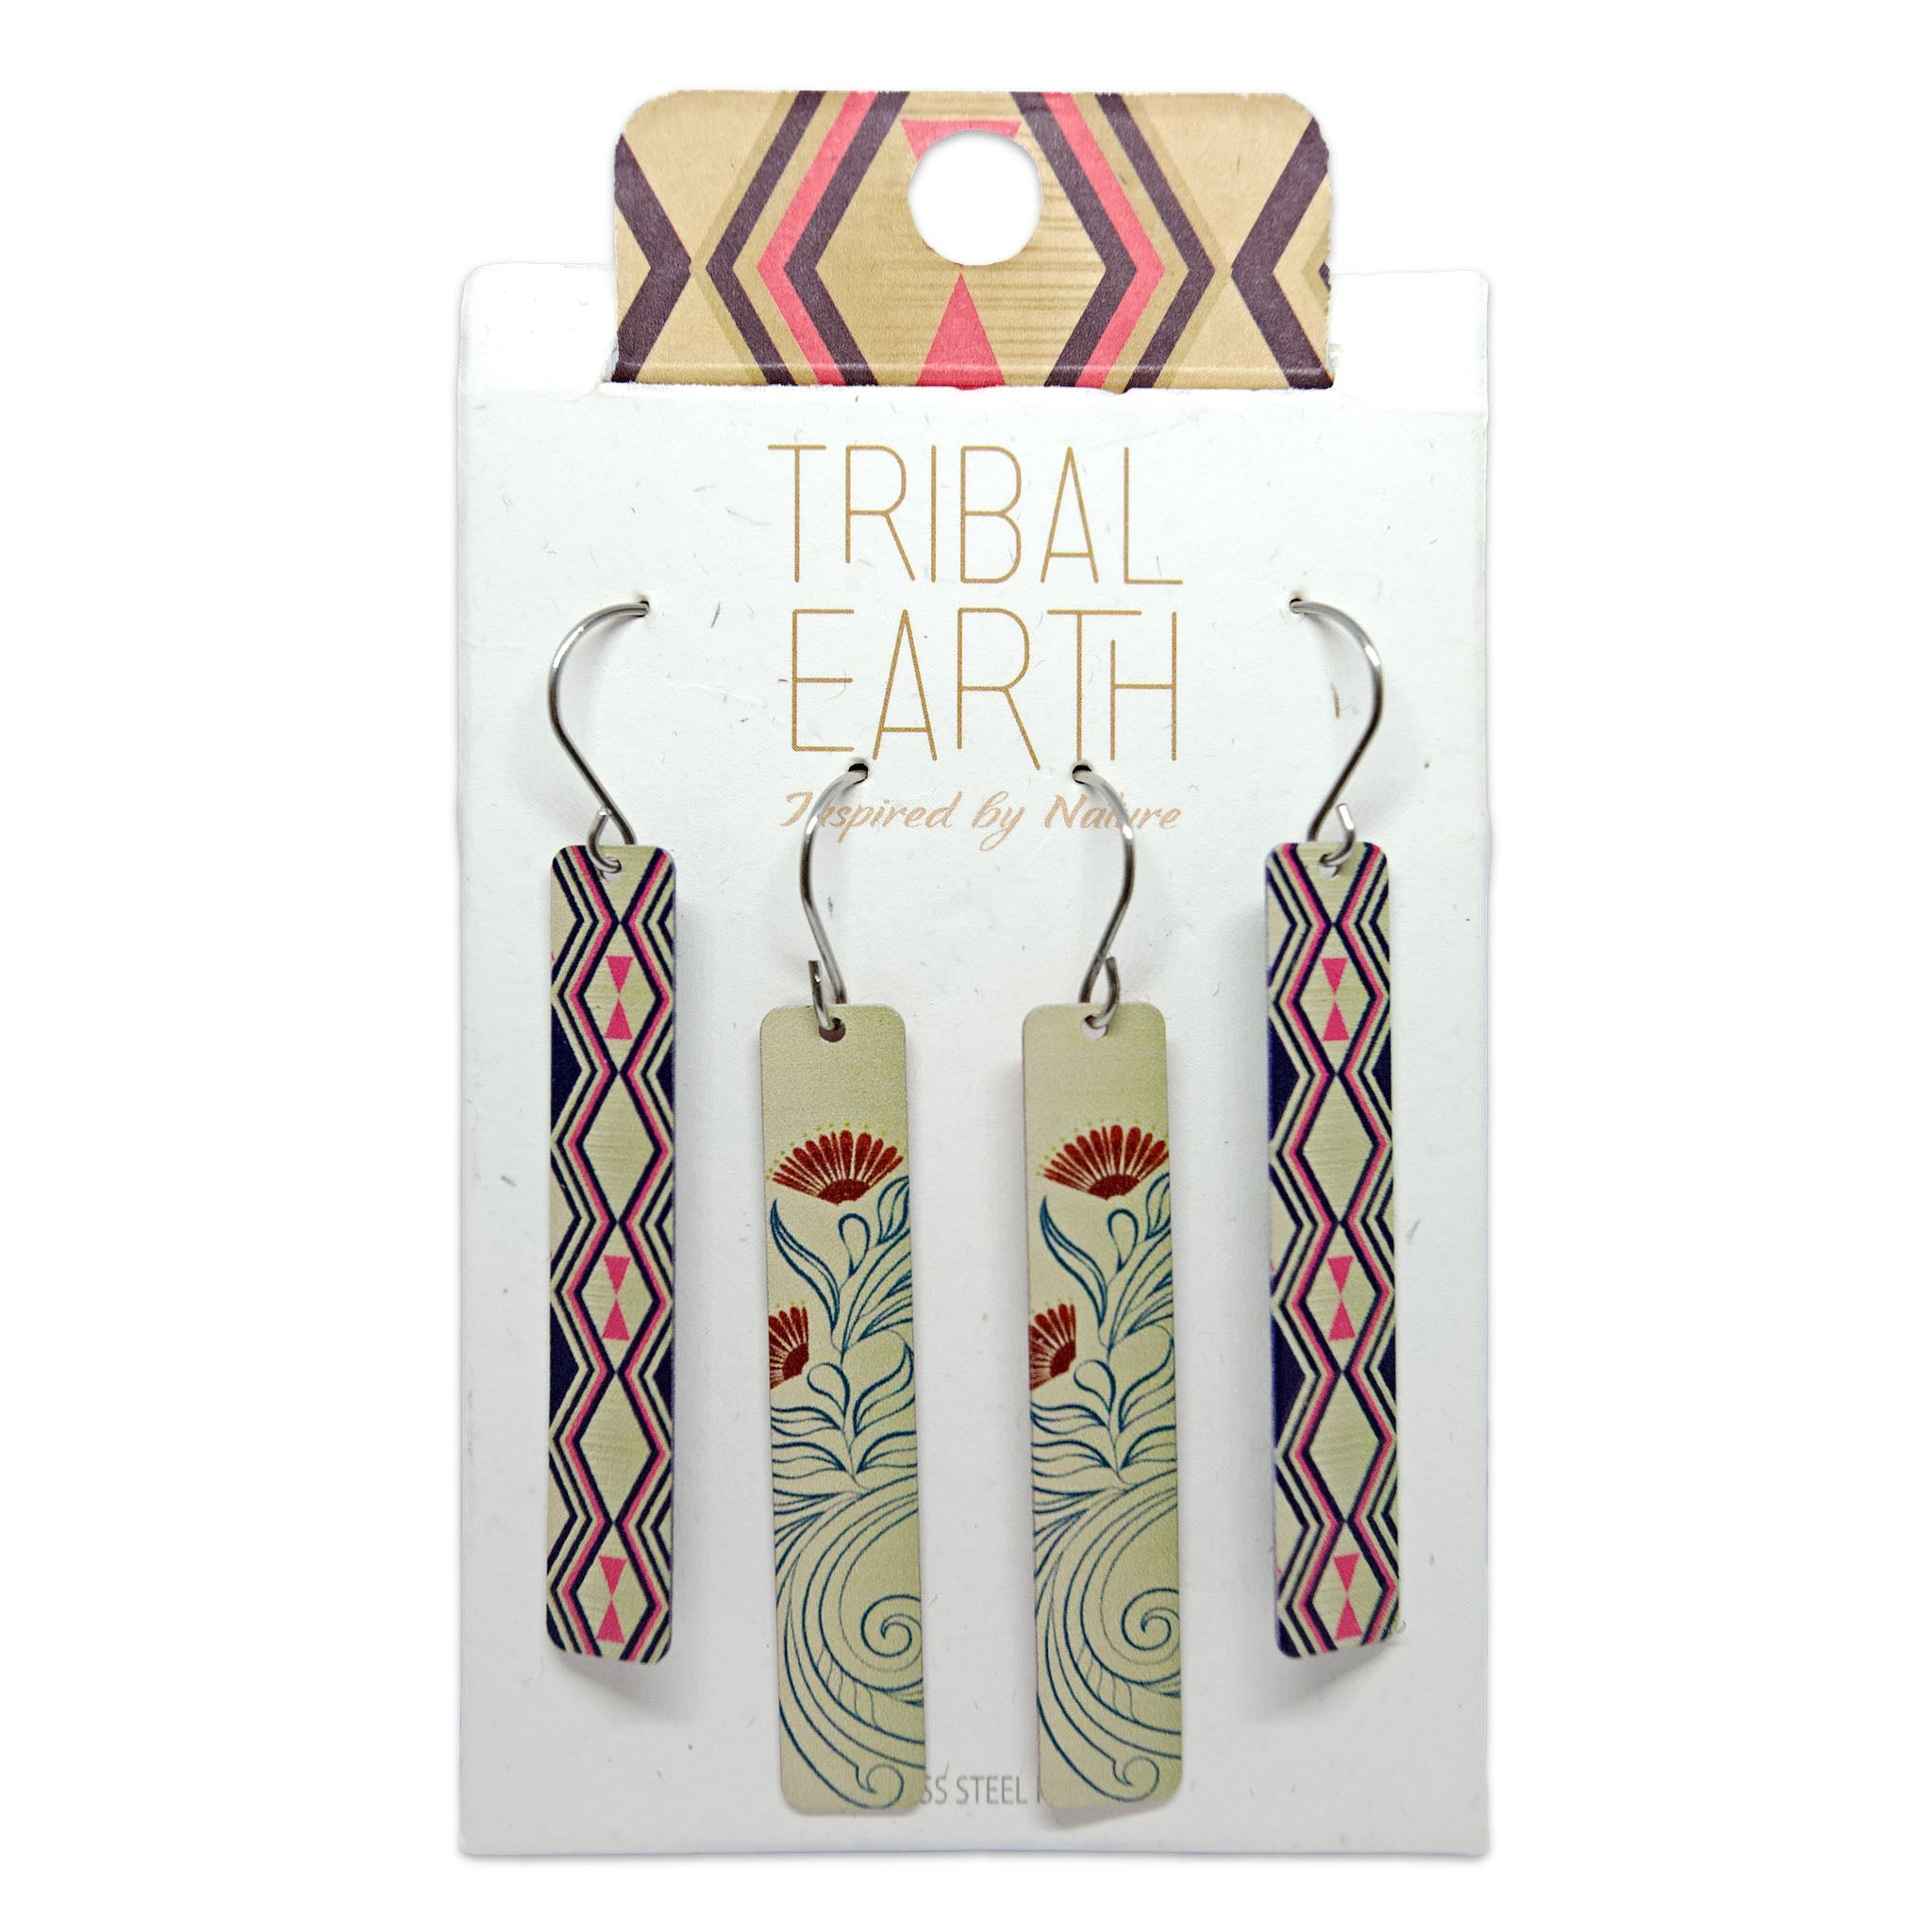 Rectangle gold coloured drop style earring set. Designed in New Zealand. www.tribalearth.co.nz